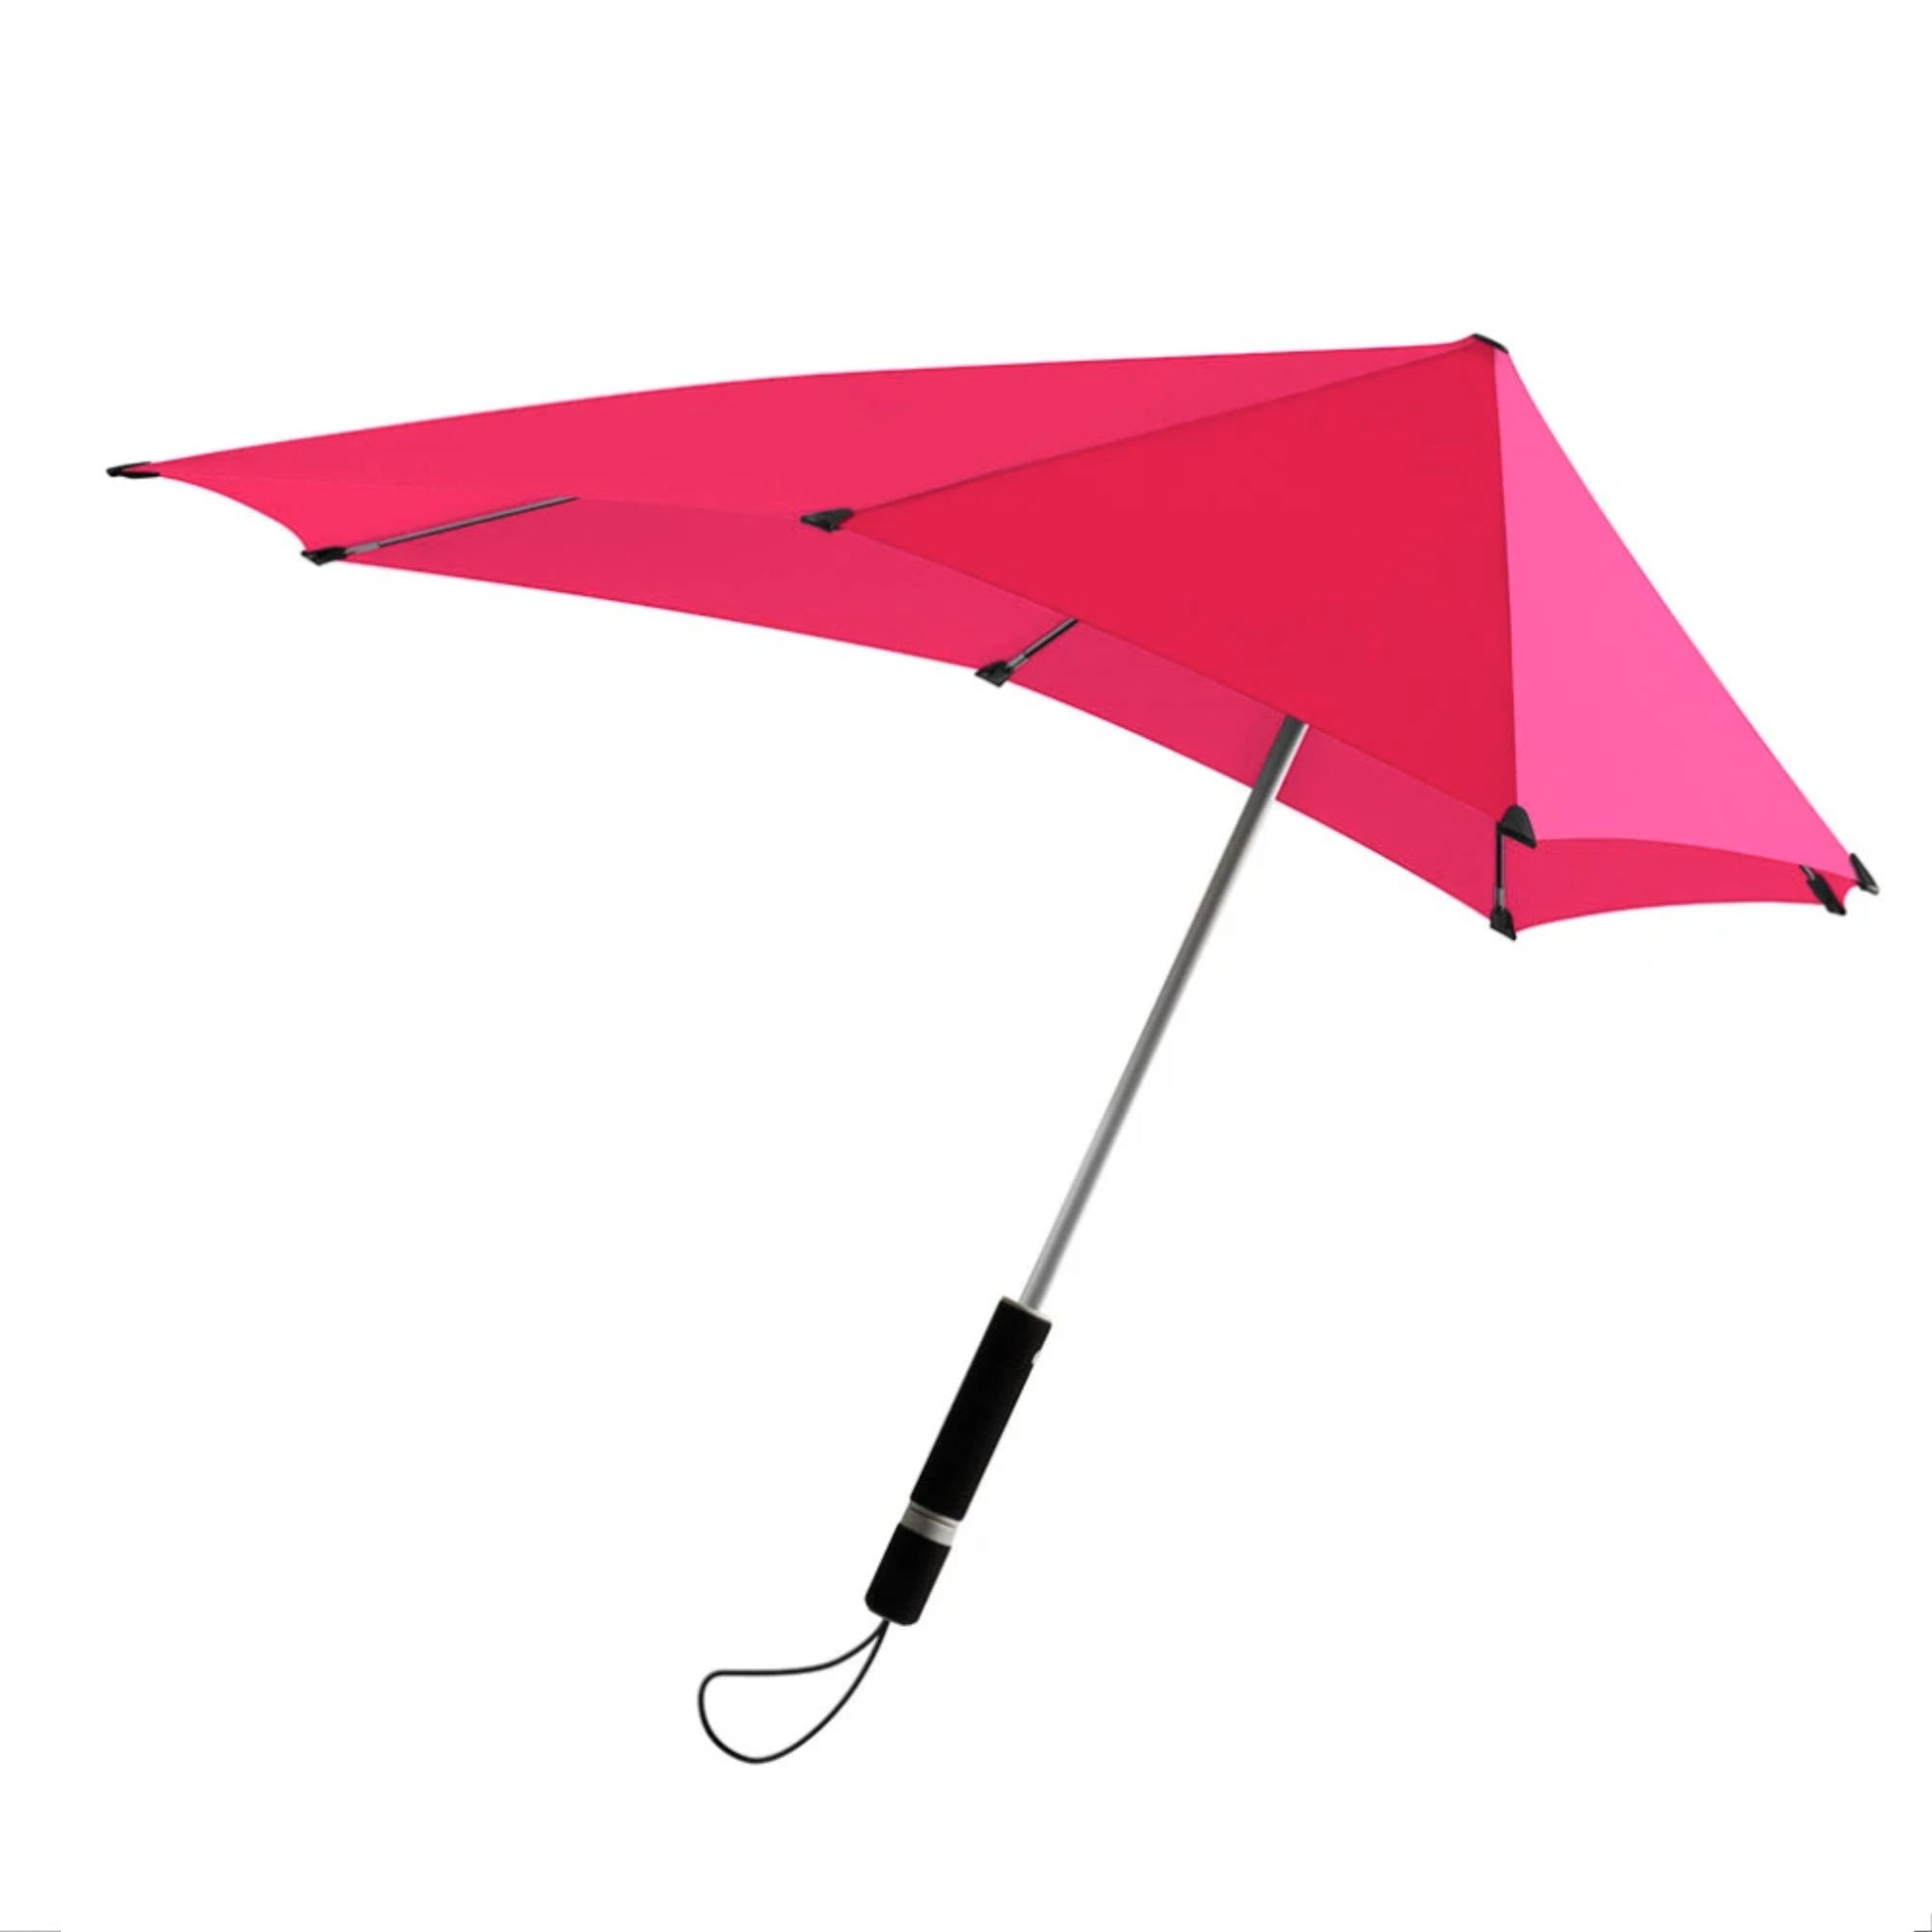 Senz° Original storm umbrella, bright pink